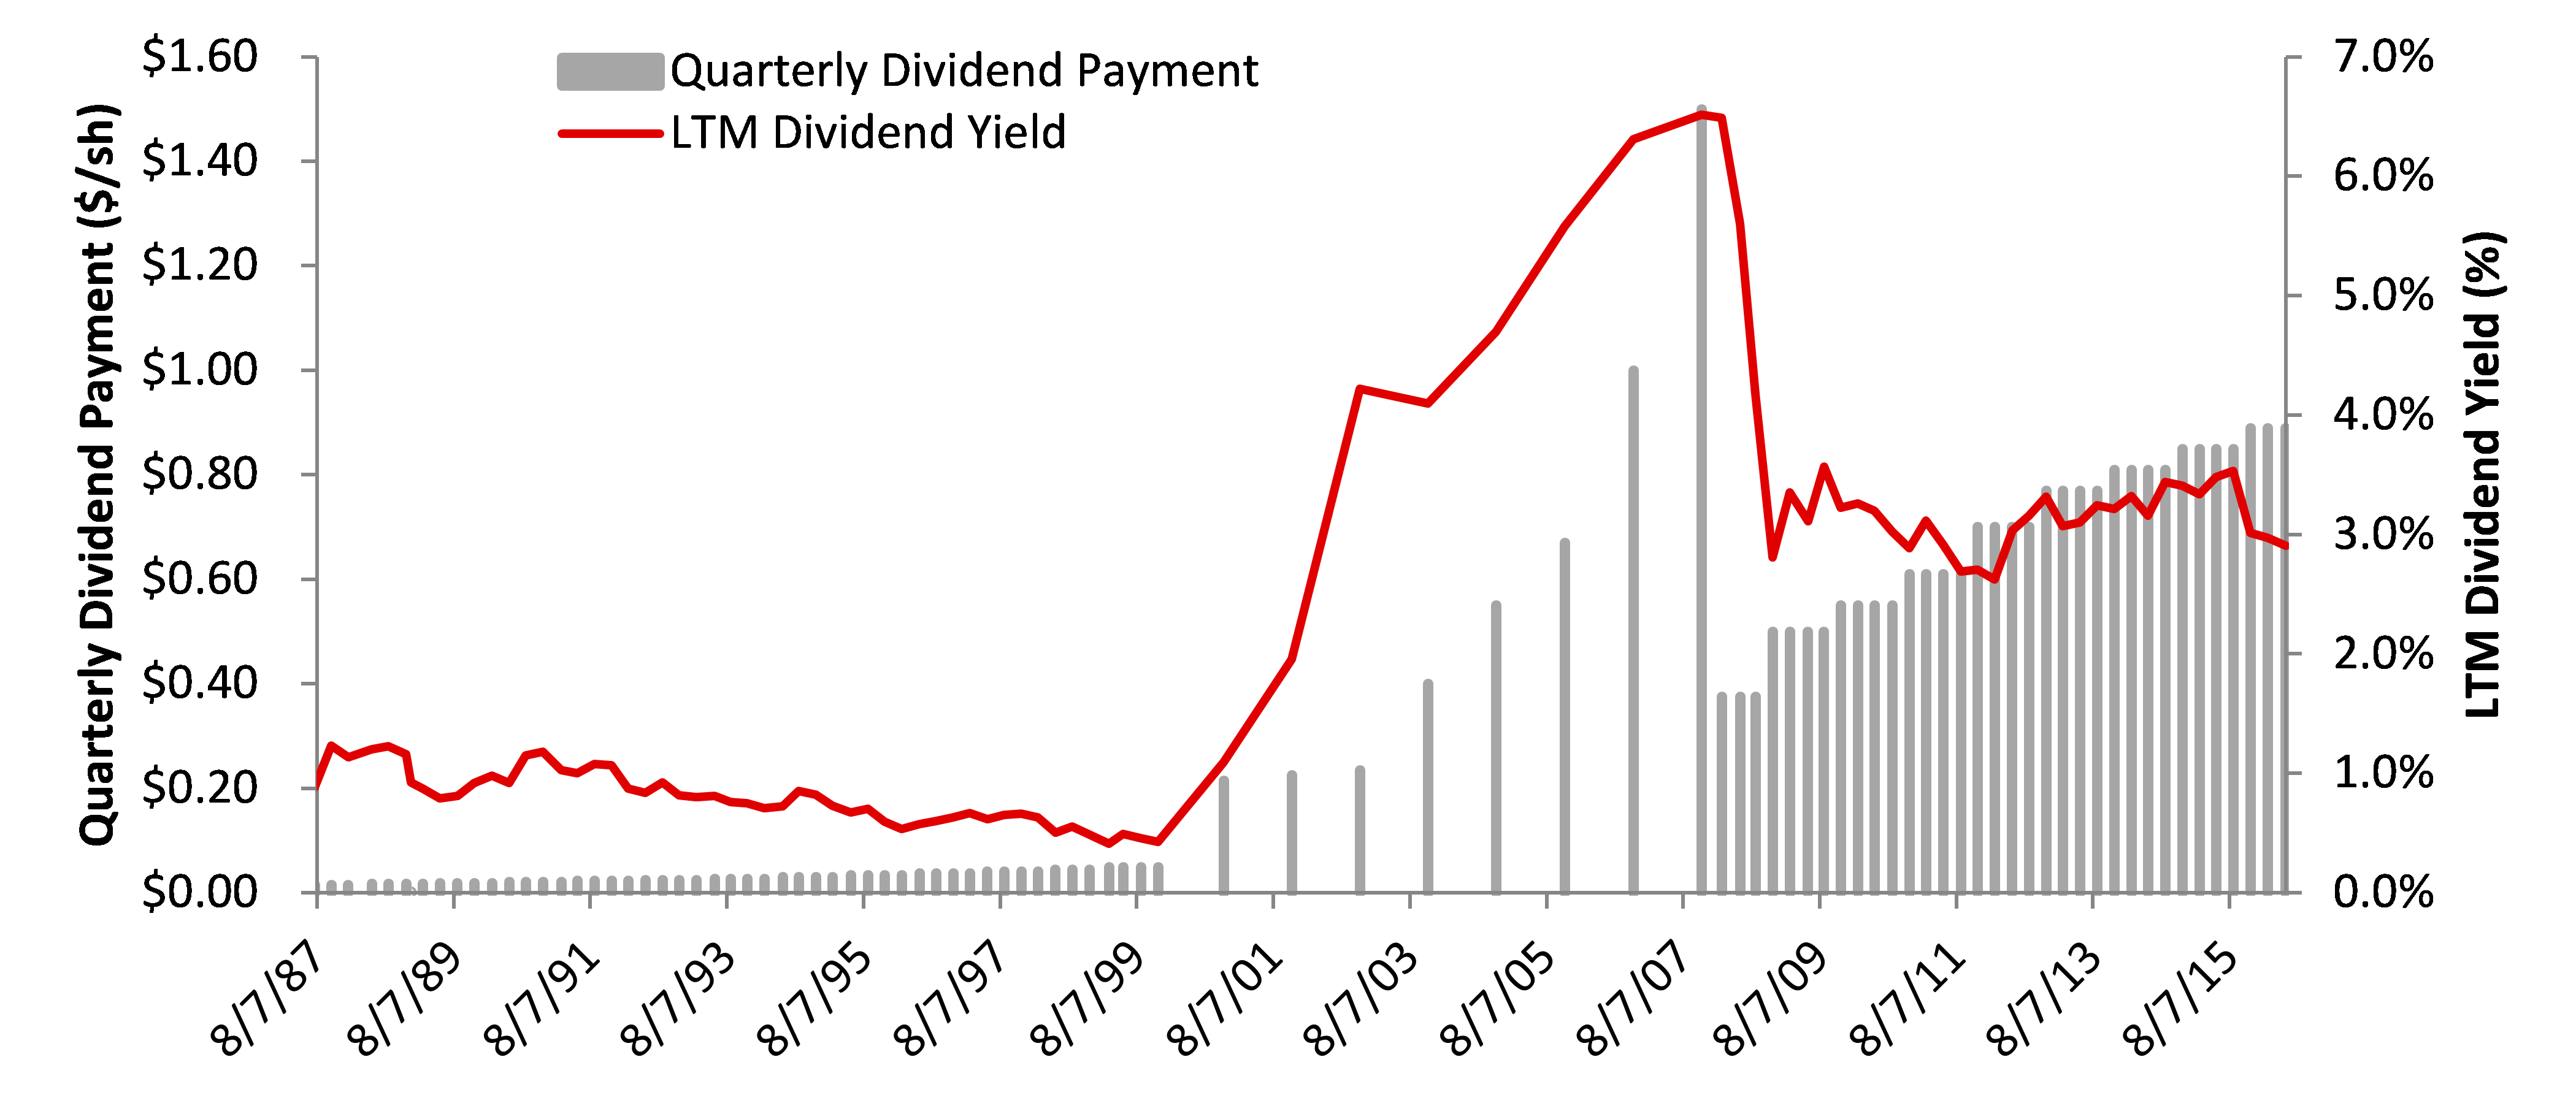 McDonalds Dividend History Quarterly